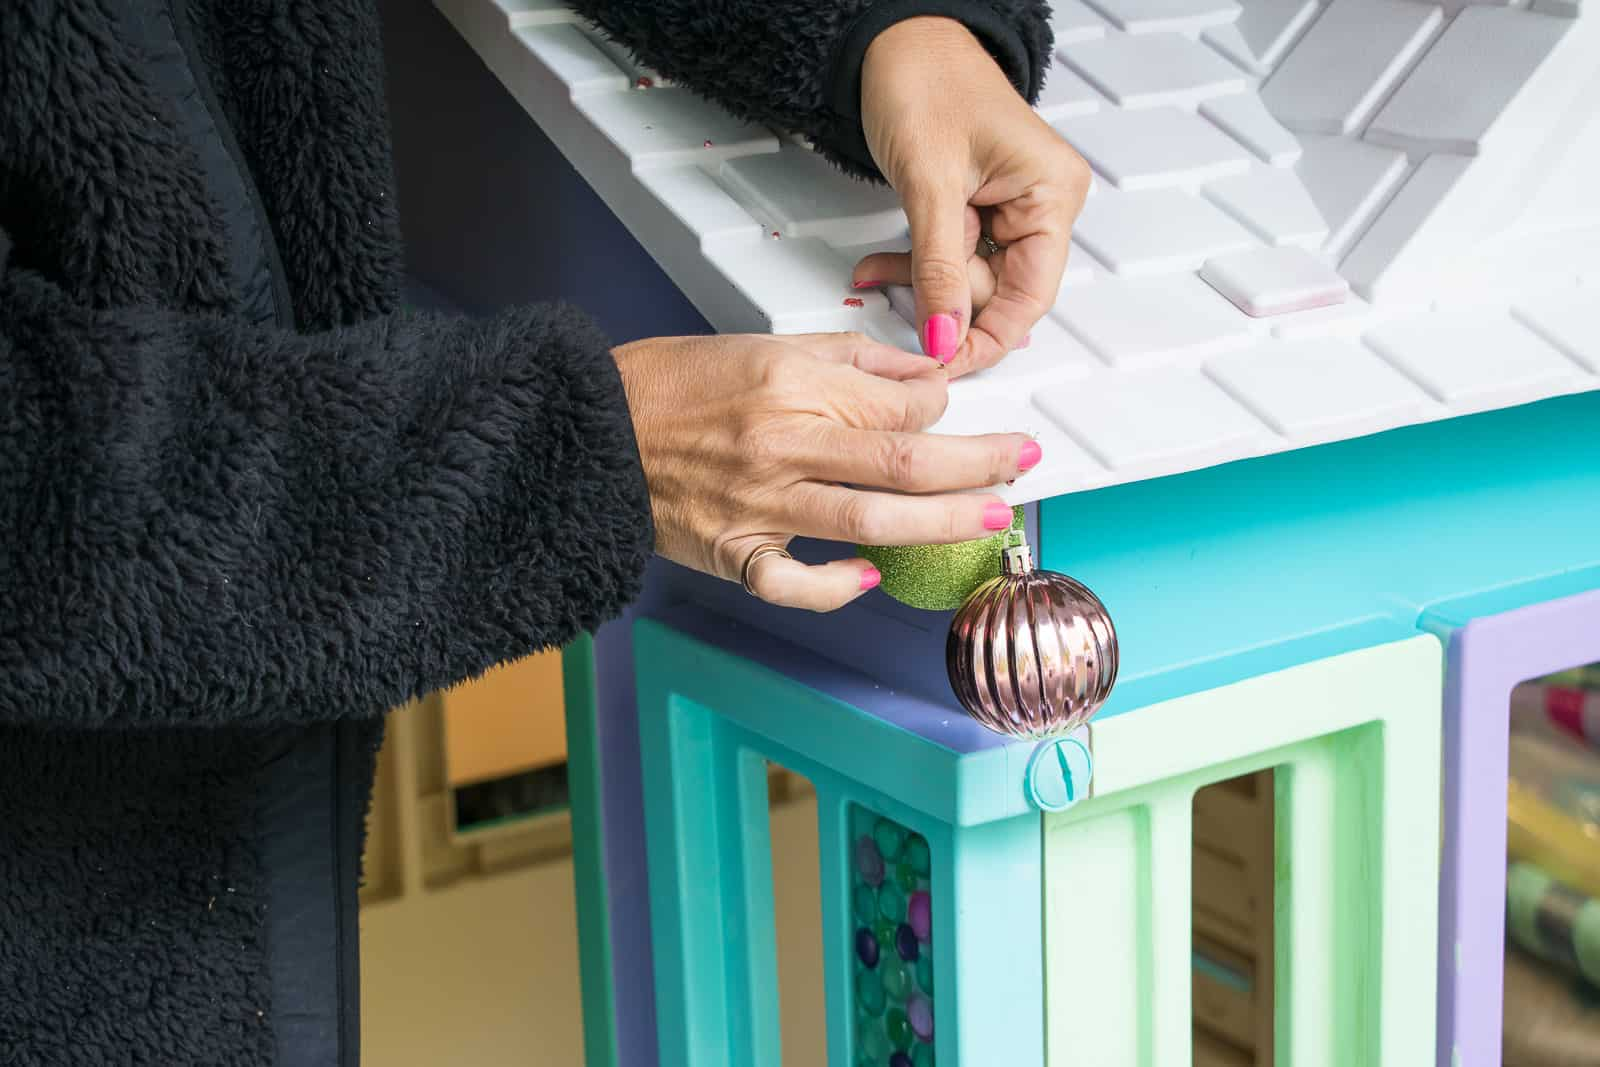 drill holes and attach ornaments to eaves